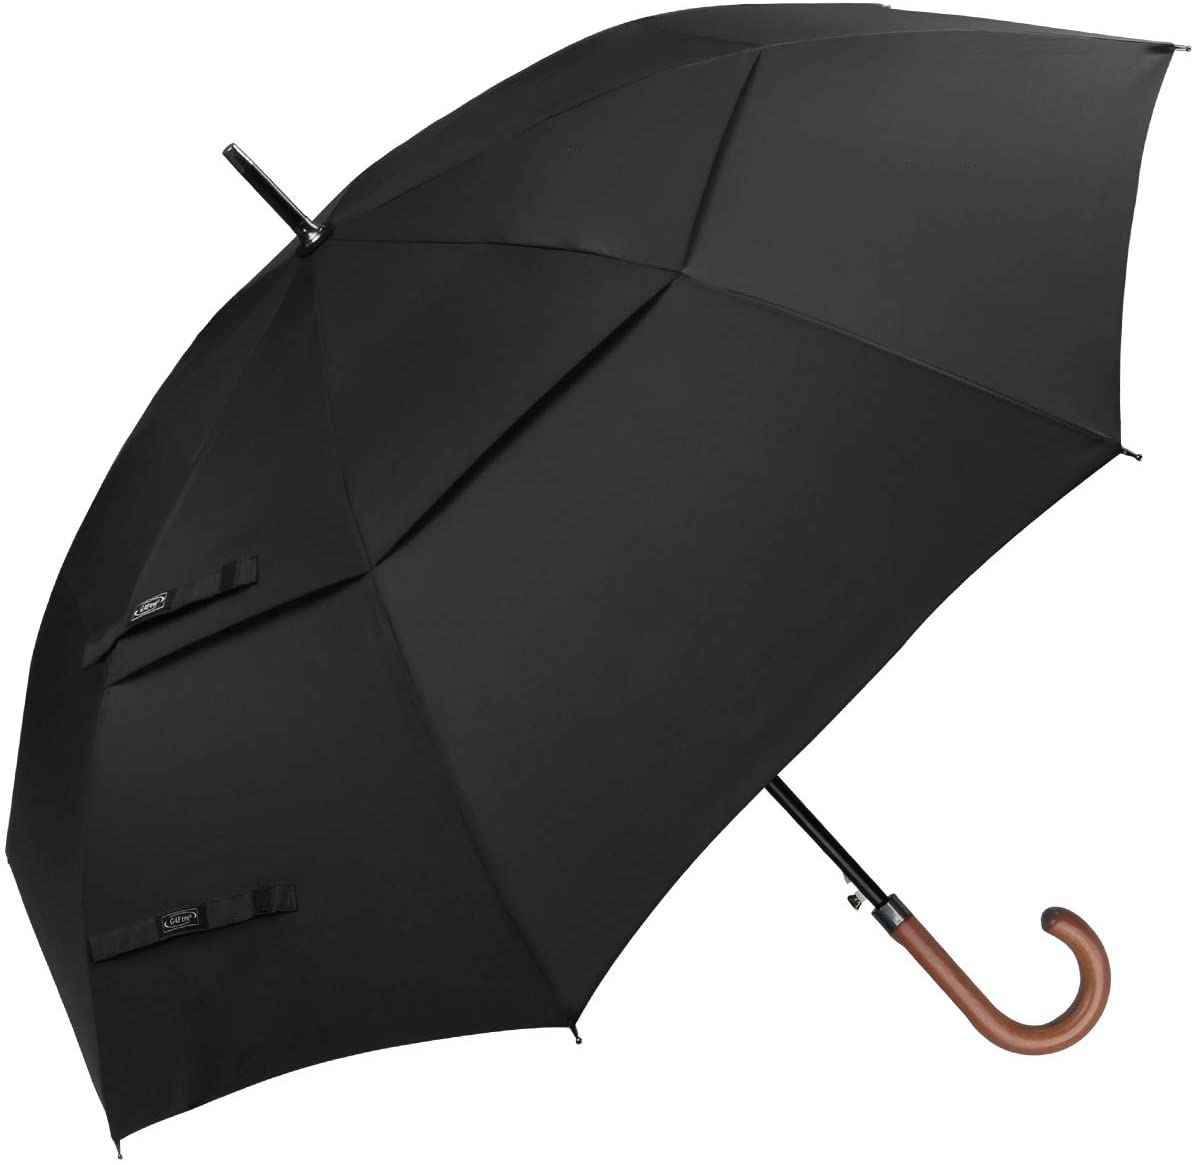 G4Free 52/62inch Wooden J Handle Golf Umbrella Windproof UV Protection Classic Stick Wedding Cane Umbrellas, Auto Open Cane Hook Handle